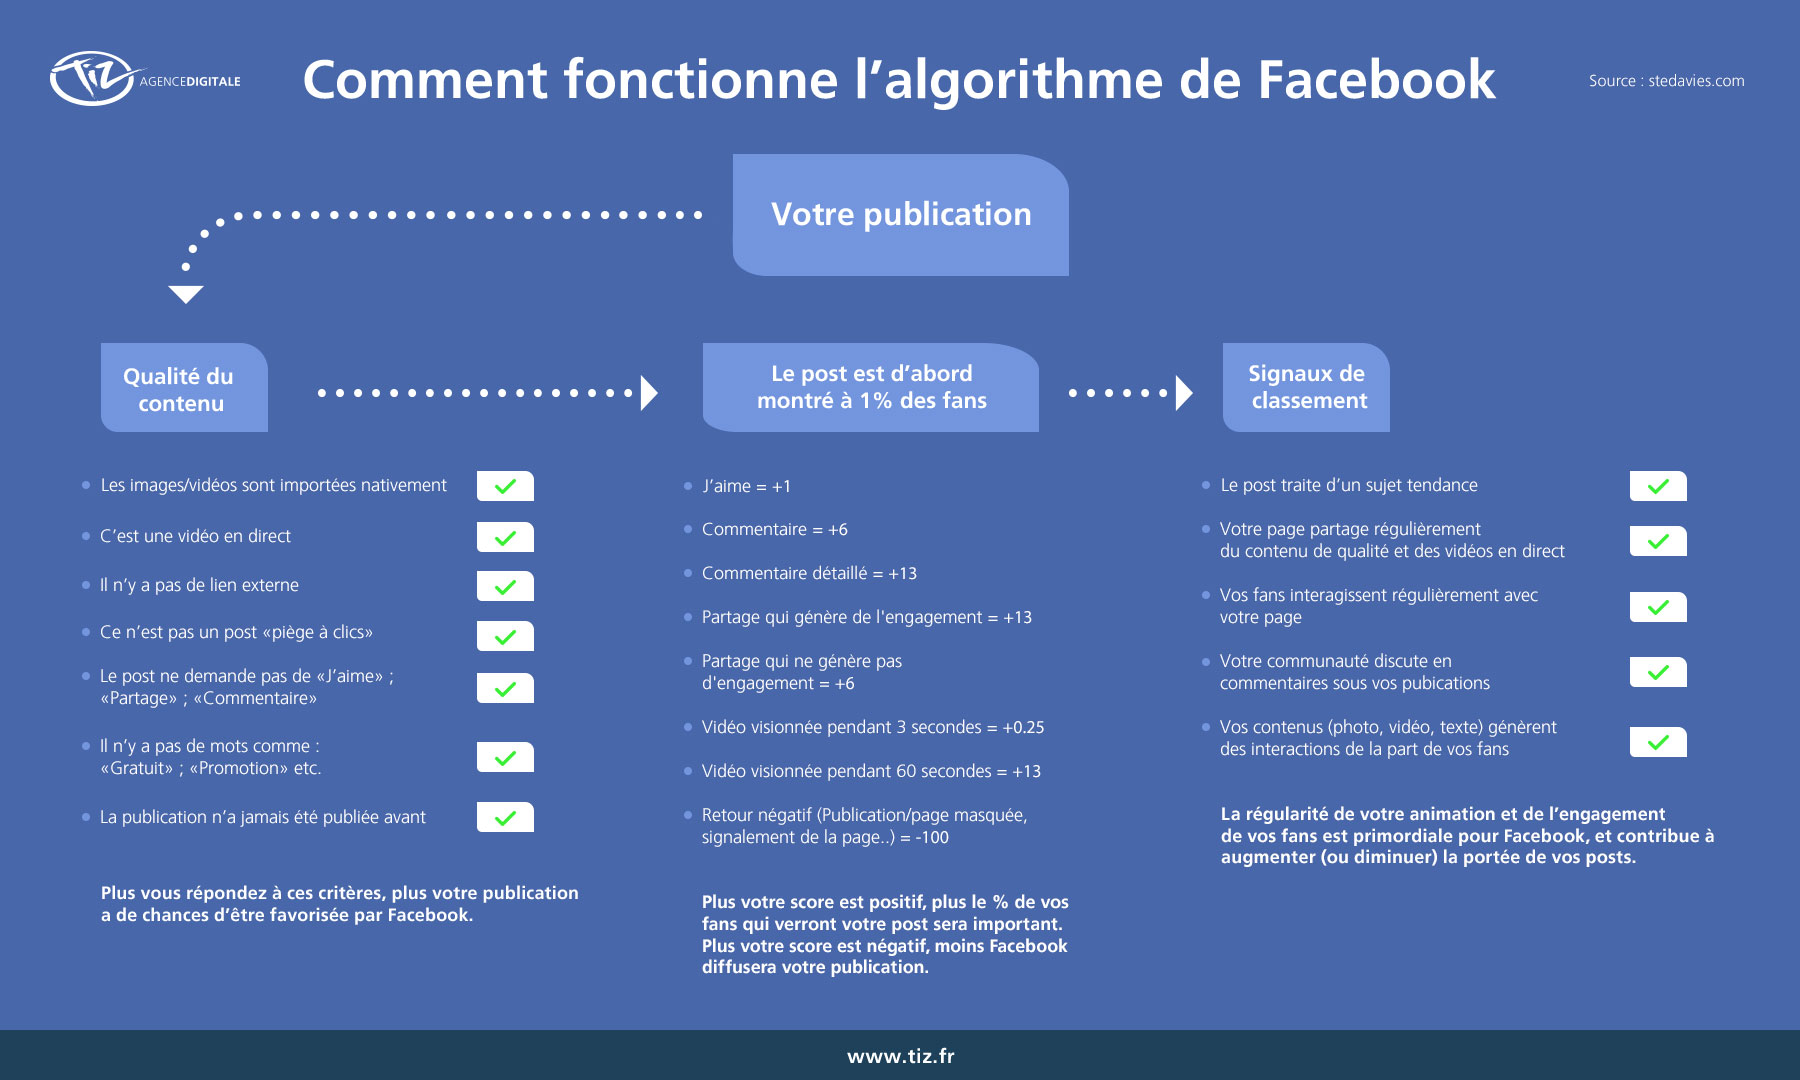 Comment hacker Linkedin, Twitter, Youtube, Facebook, Pinterest, Instagram... ? Jouez simplement avec l'algorithme ! 10